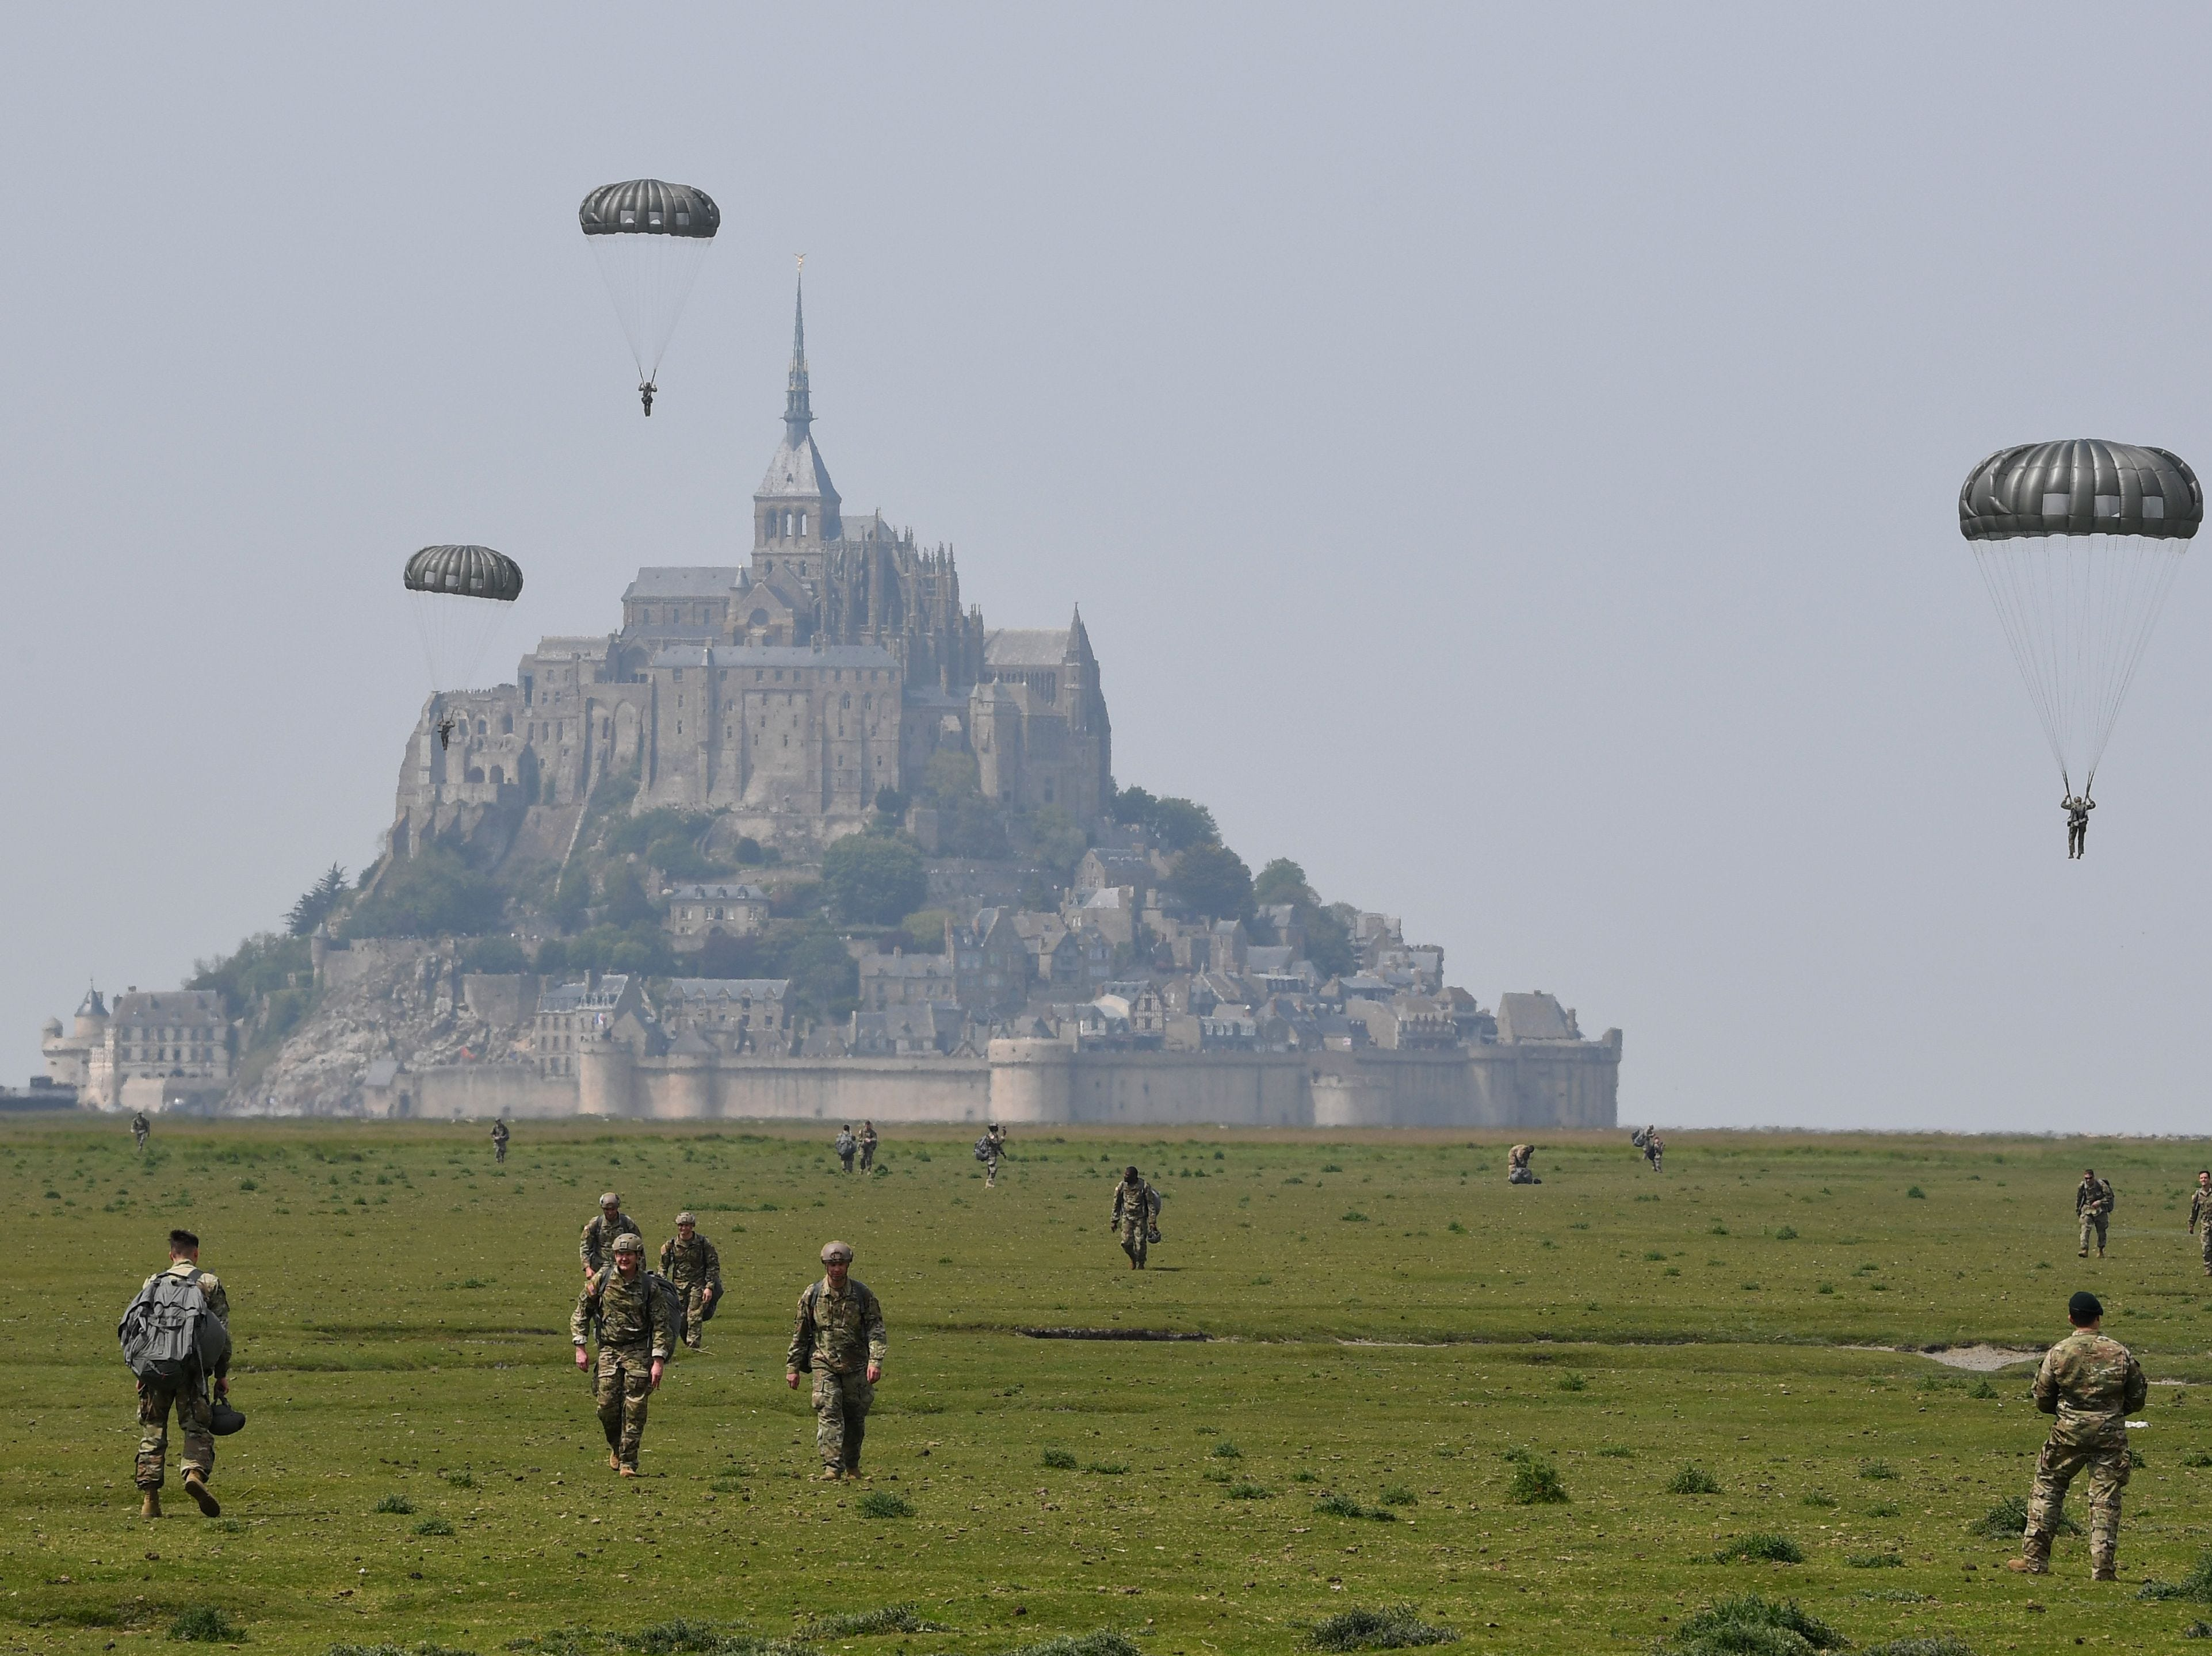 US paratroopers walk back after jumping over Le Mont-Saint-Michel, north-western France on May 18, 2019, less than three weeks before the 75th anniversary of the D-Day landings. In what remains the biggest amphibious assault in history, some 156,000 Allied personnel landed in France on June 6, 1944. An estimated 10,000 Allied troops were left dead, wounded or missing, while Nazi Germany lost between 4,000 and 9,000 troops, and thousands of French civilians were killed. The 75th anniversary of the D-Day landings will fall on June 6, 2019.